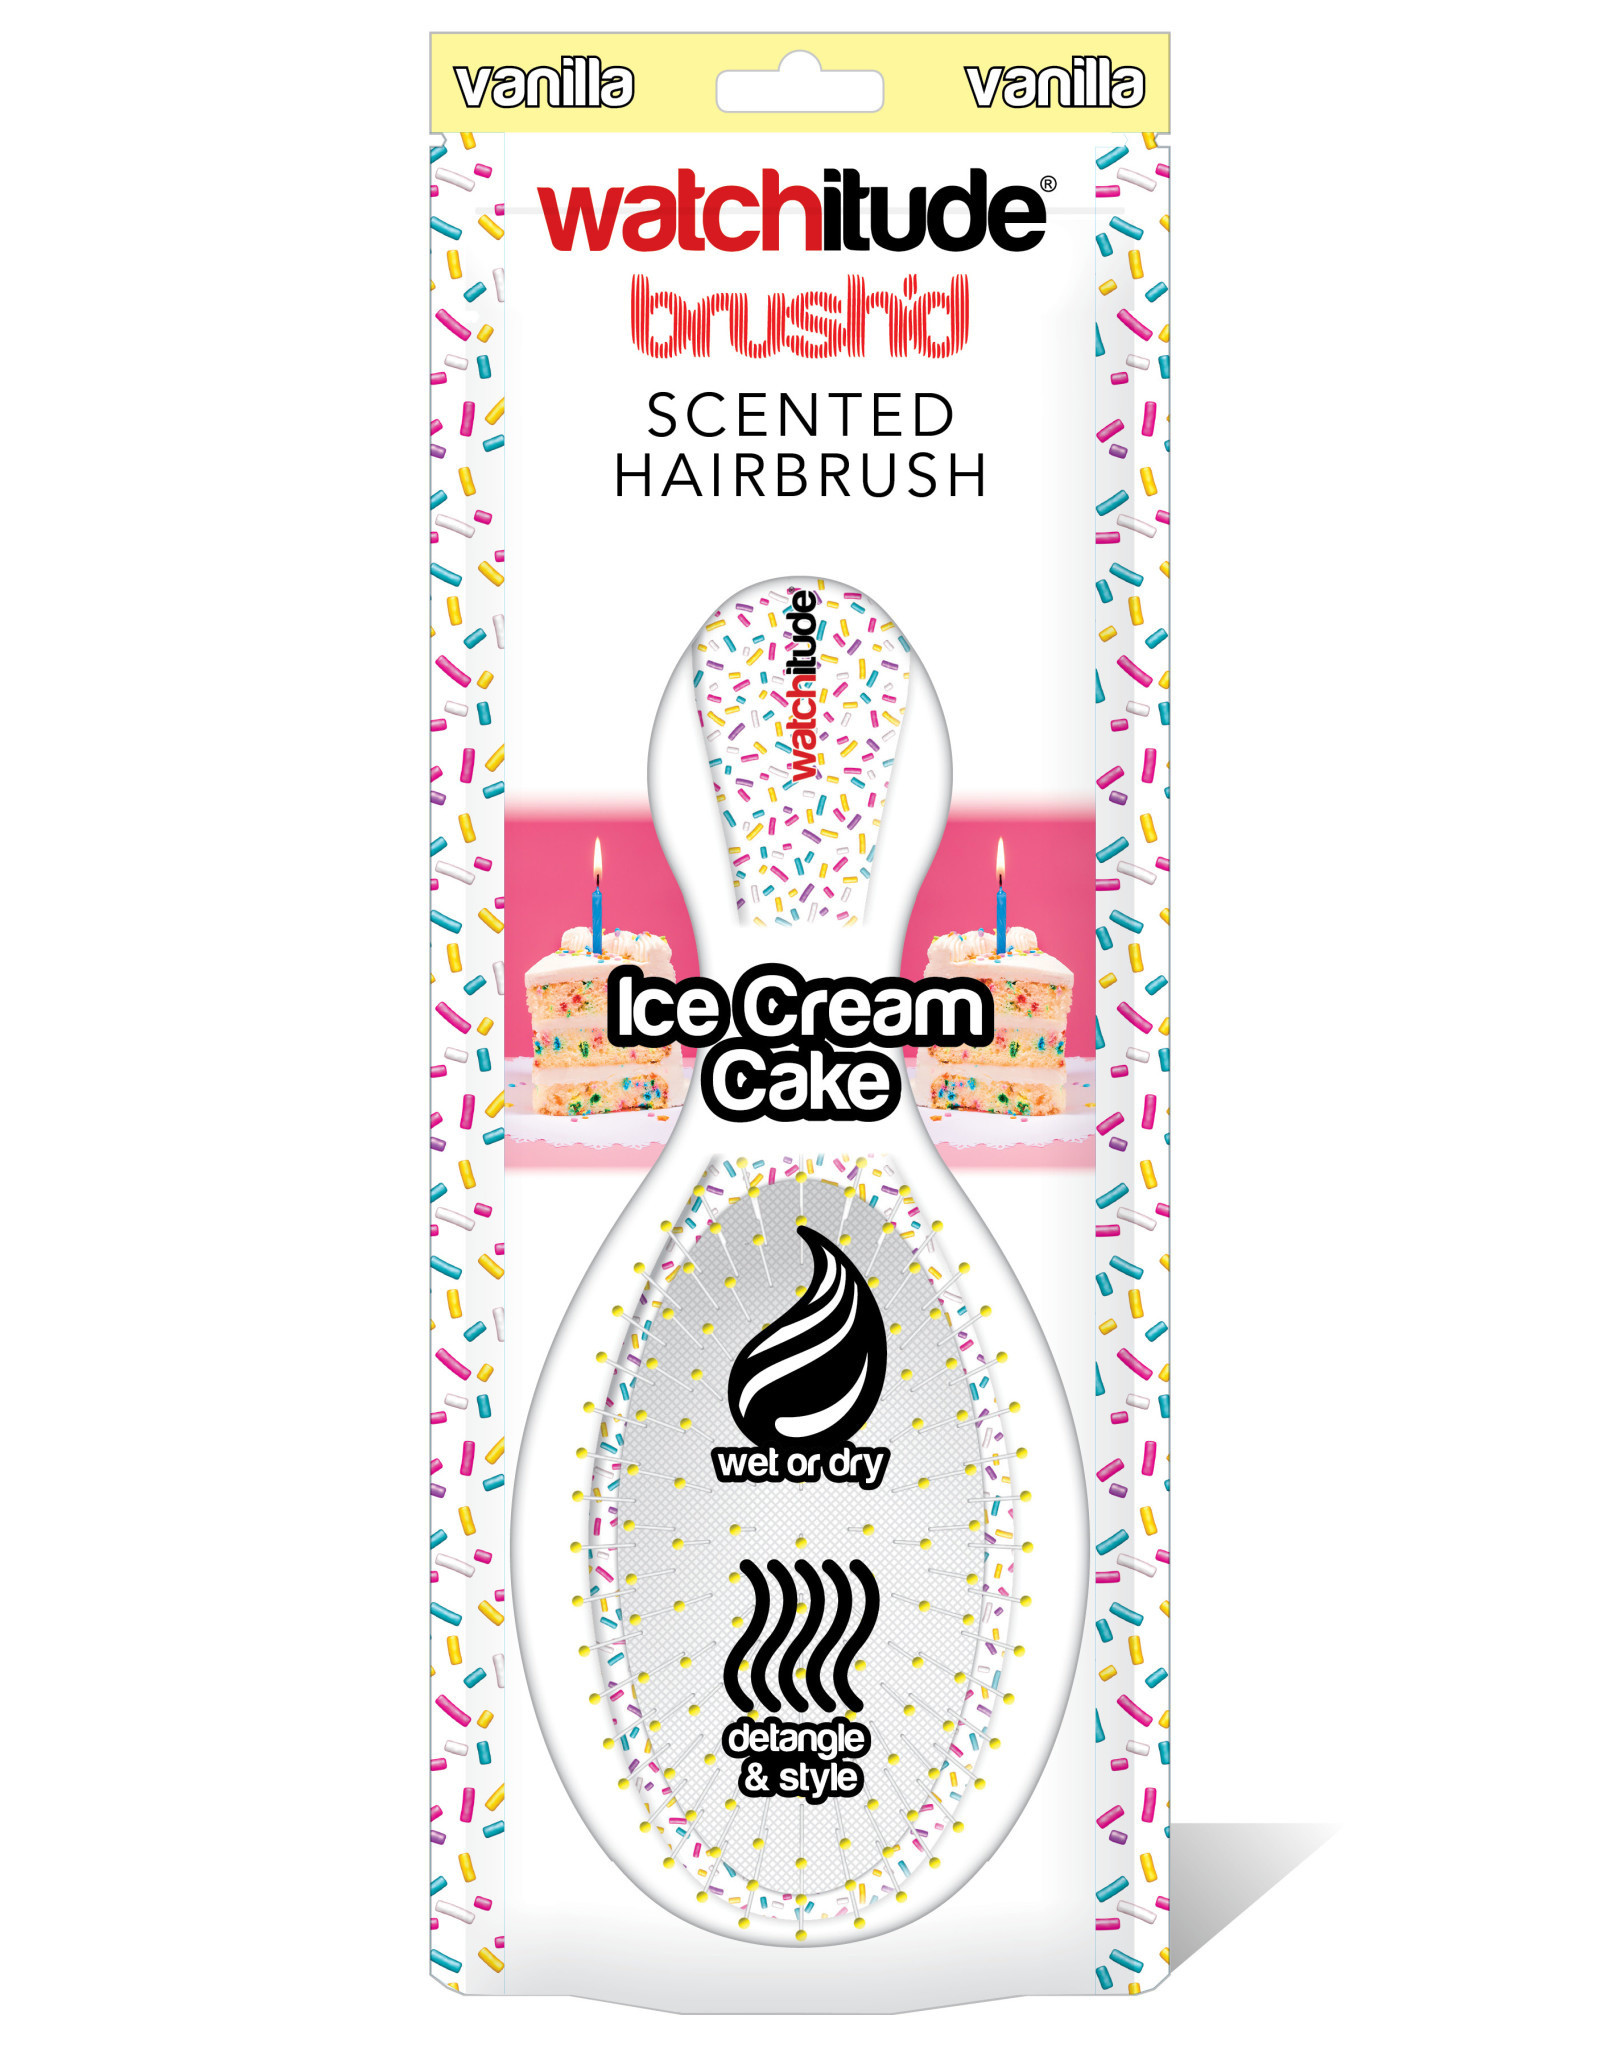 Watchitude Ice Cream Cake - Scented Hair Brush